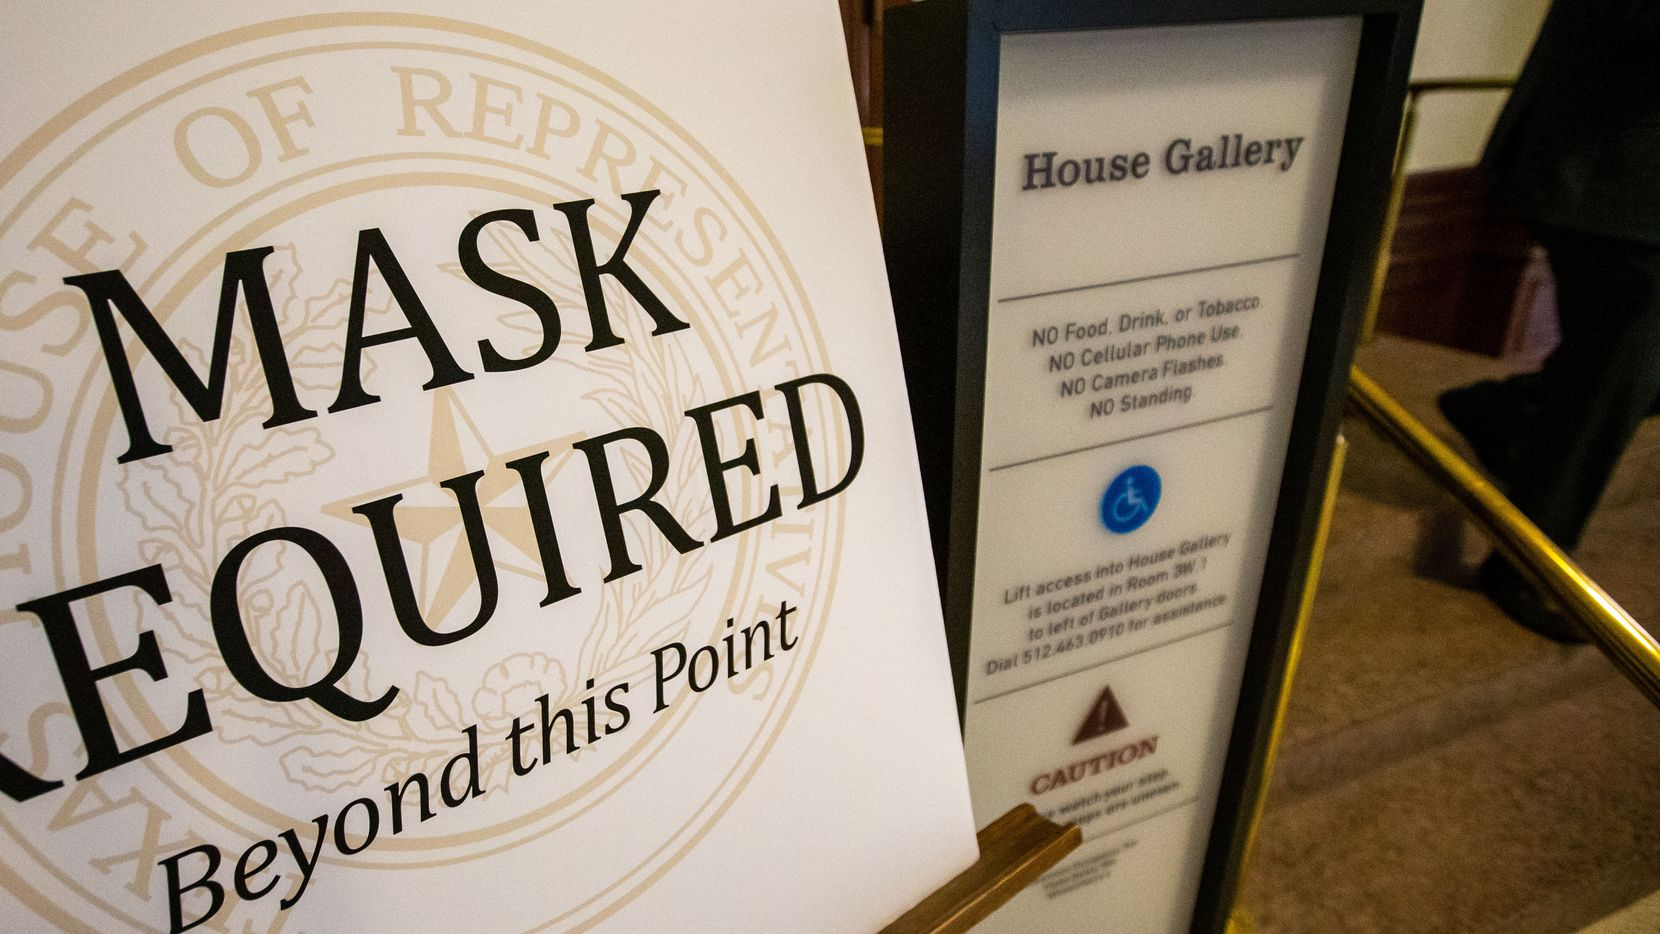 Signage enforcing mask usage outside the House Gallery of the Texas State Capitol in Austin, Texas on Wednesday, Jan. 6, 2021. (Lynda M. González/The Dallas Morning News)